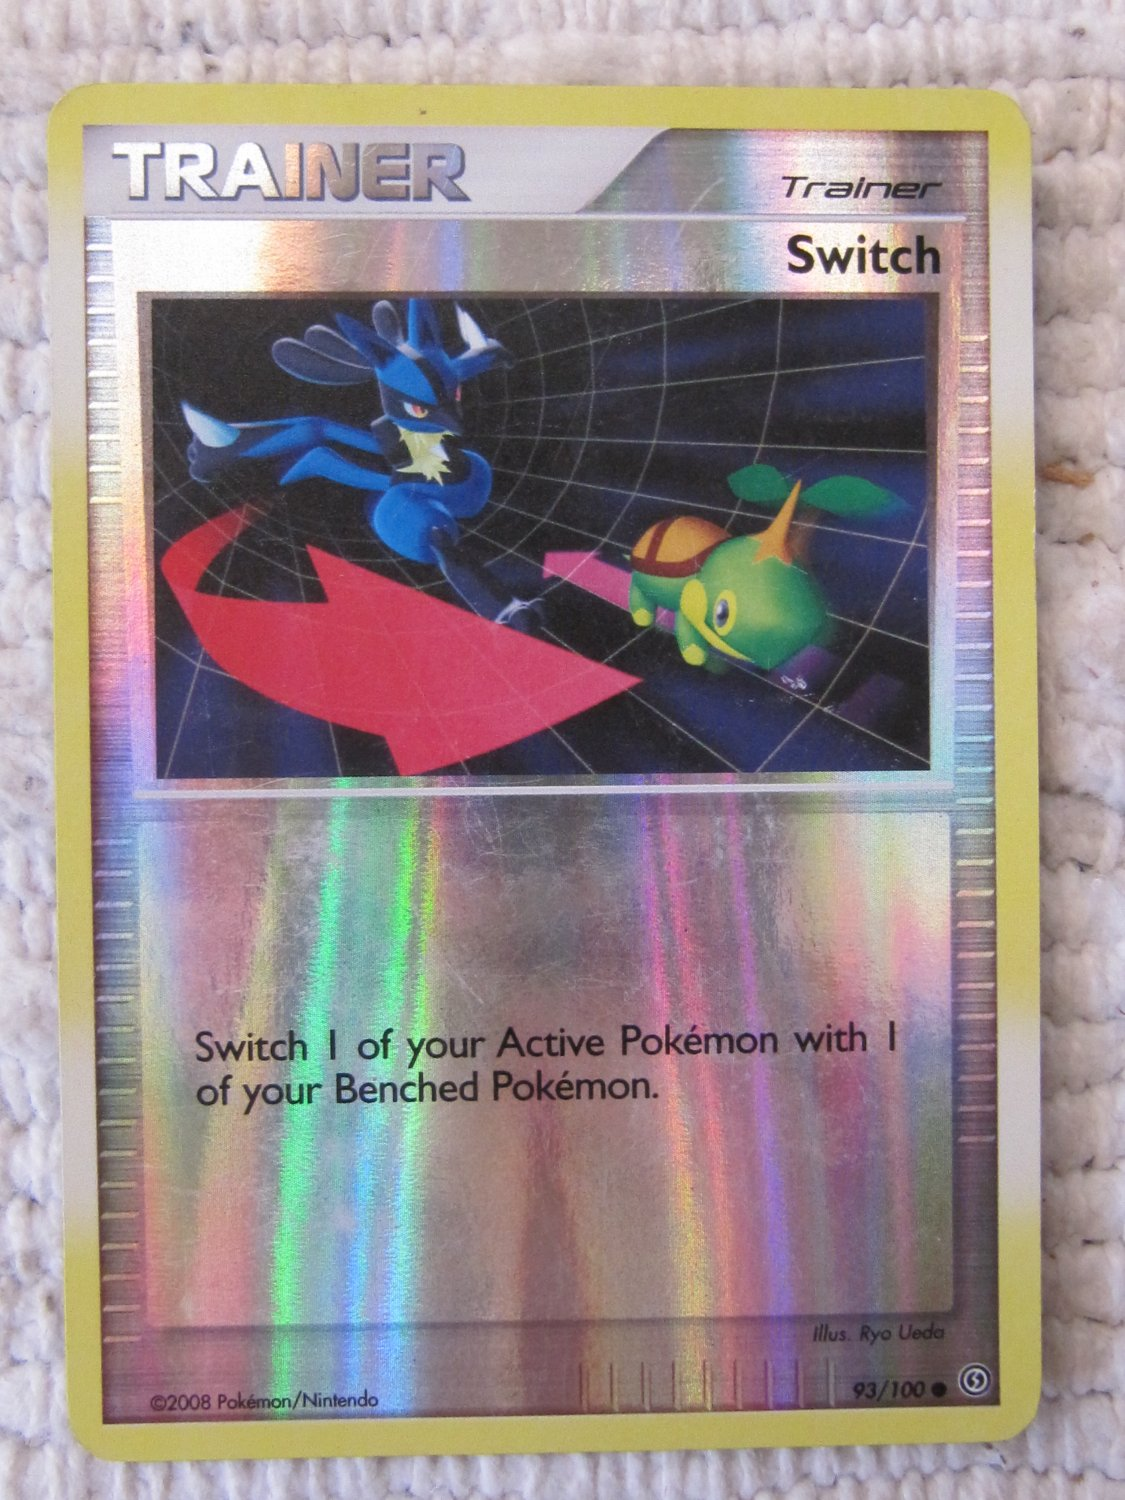 Authentic POKEMON Trainer Switch Card 93/100 Holo Foil (c) 2008